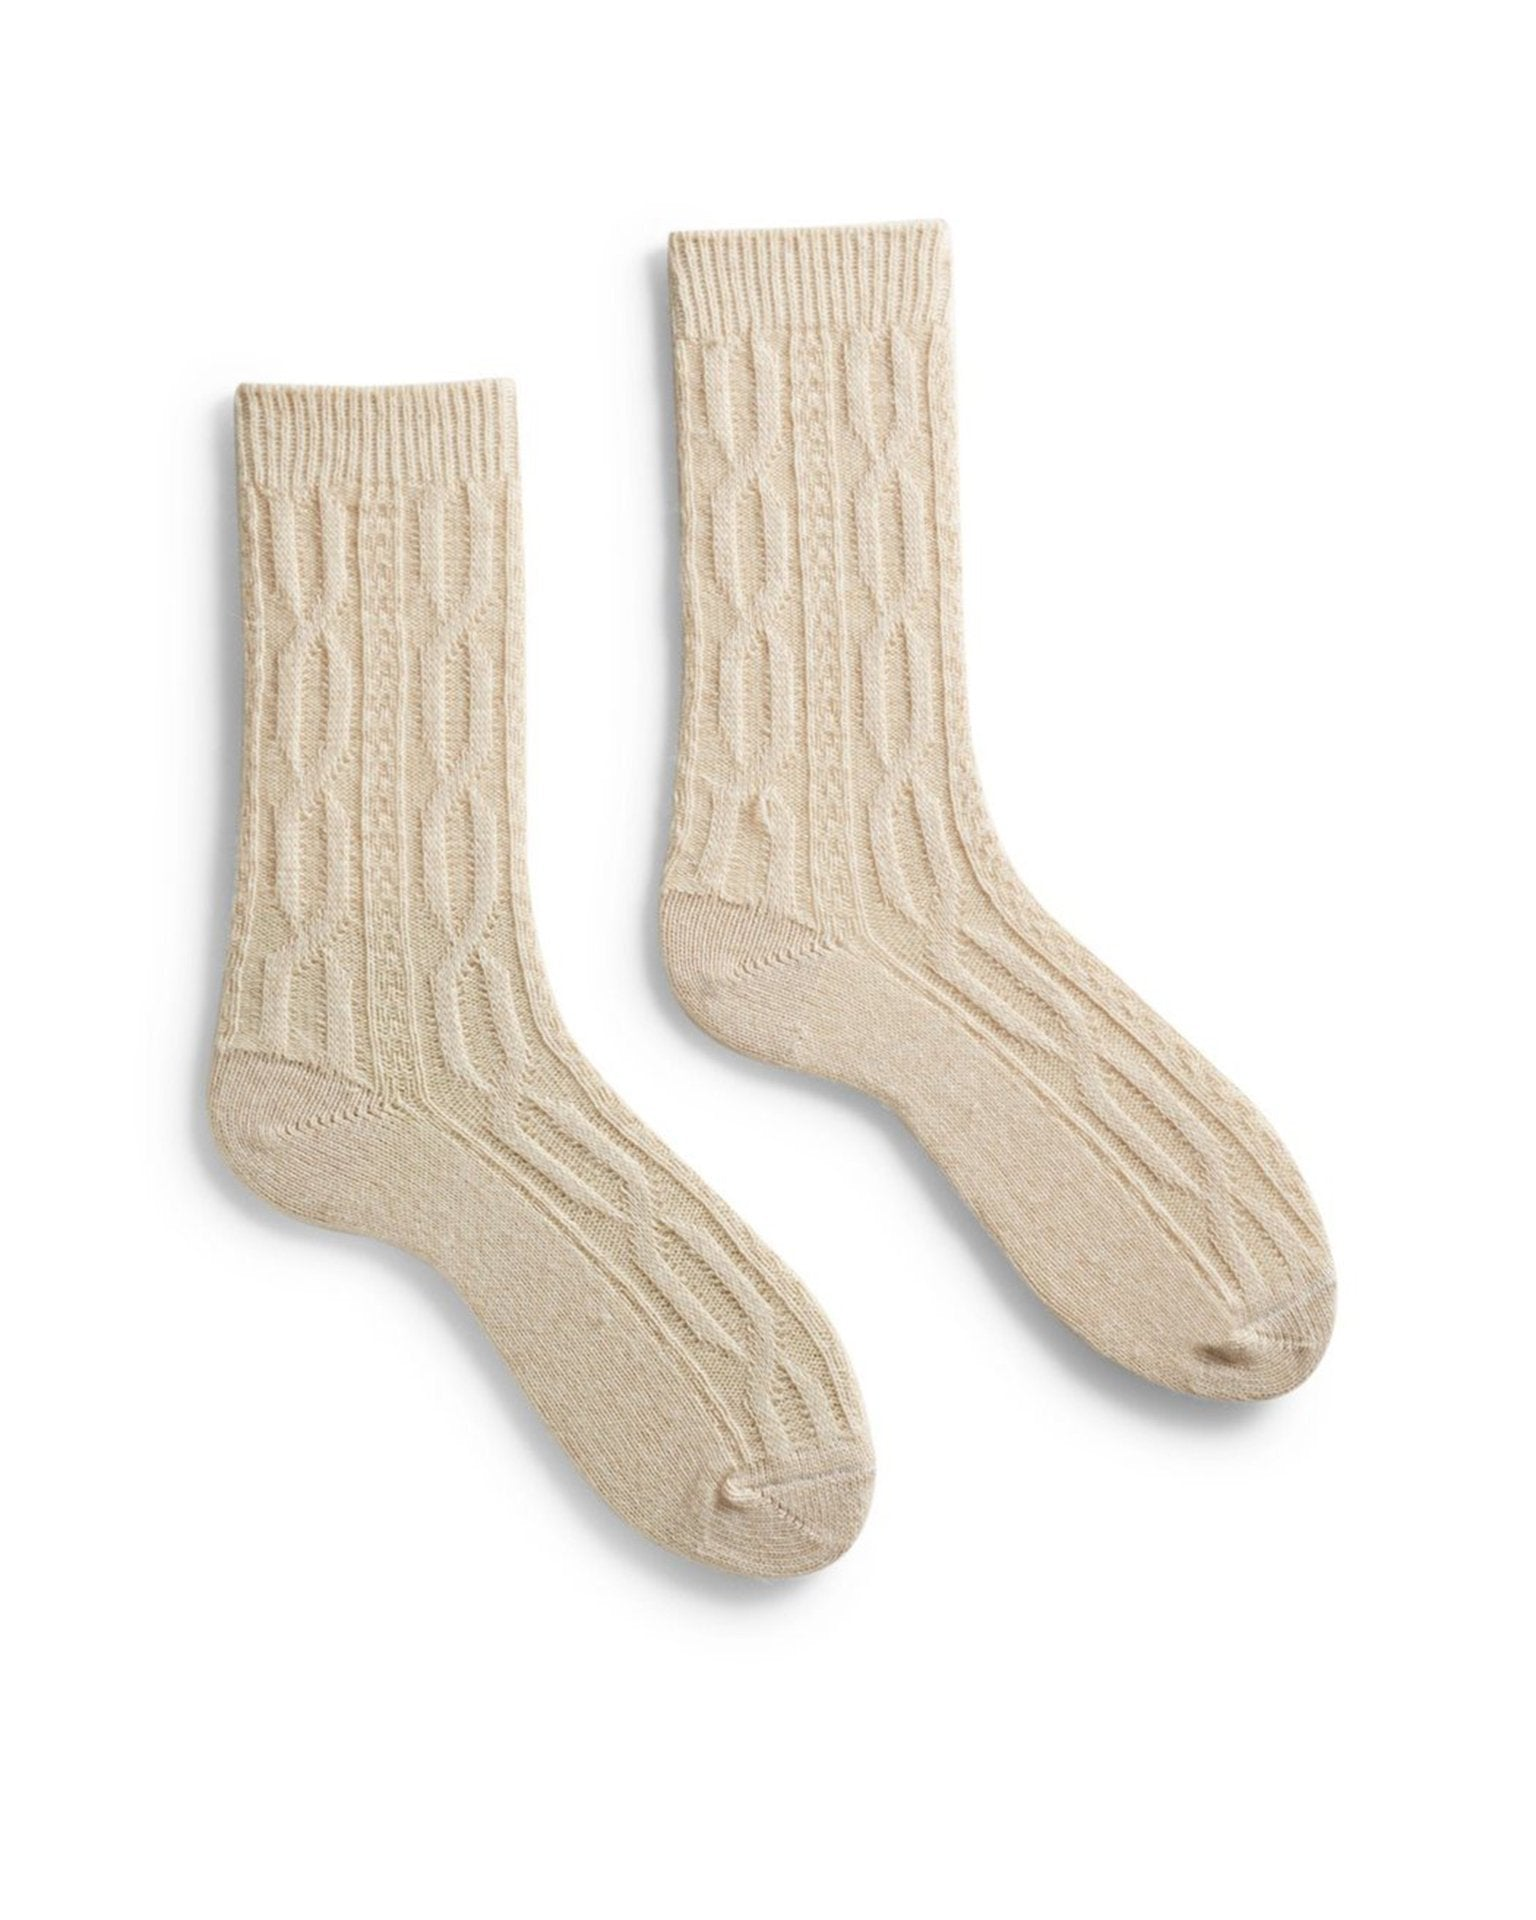 Lisa B. Accessories Cream / O/S Chunky Cable Socks